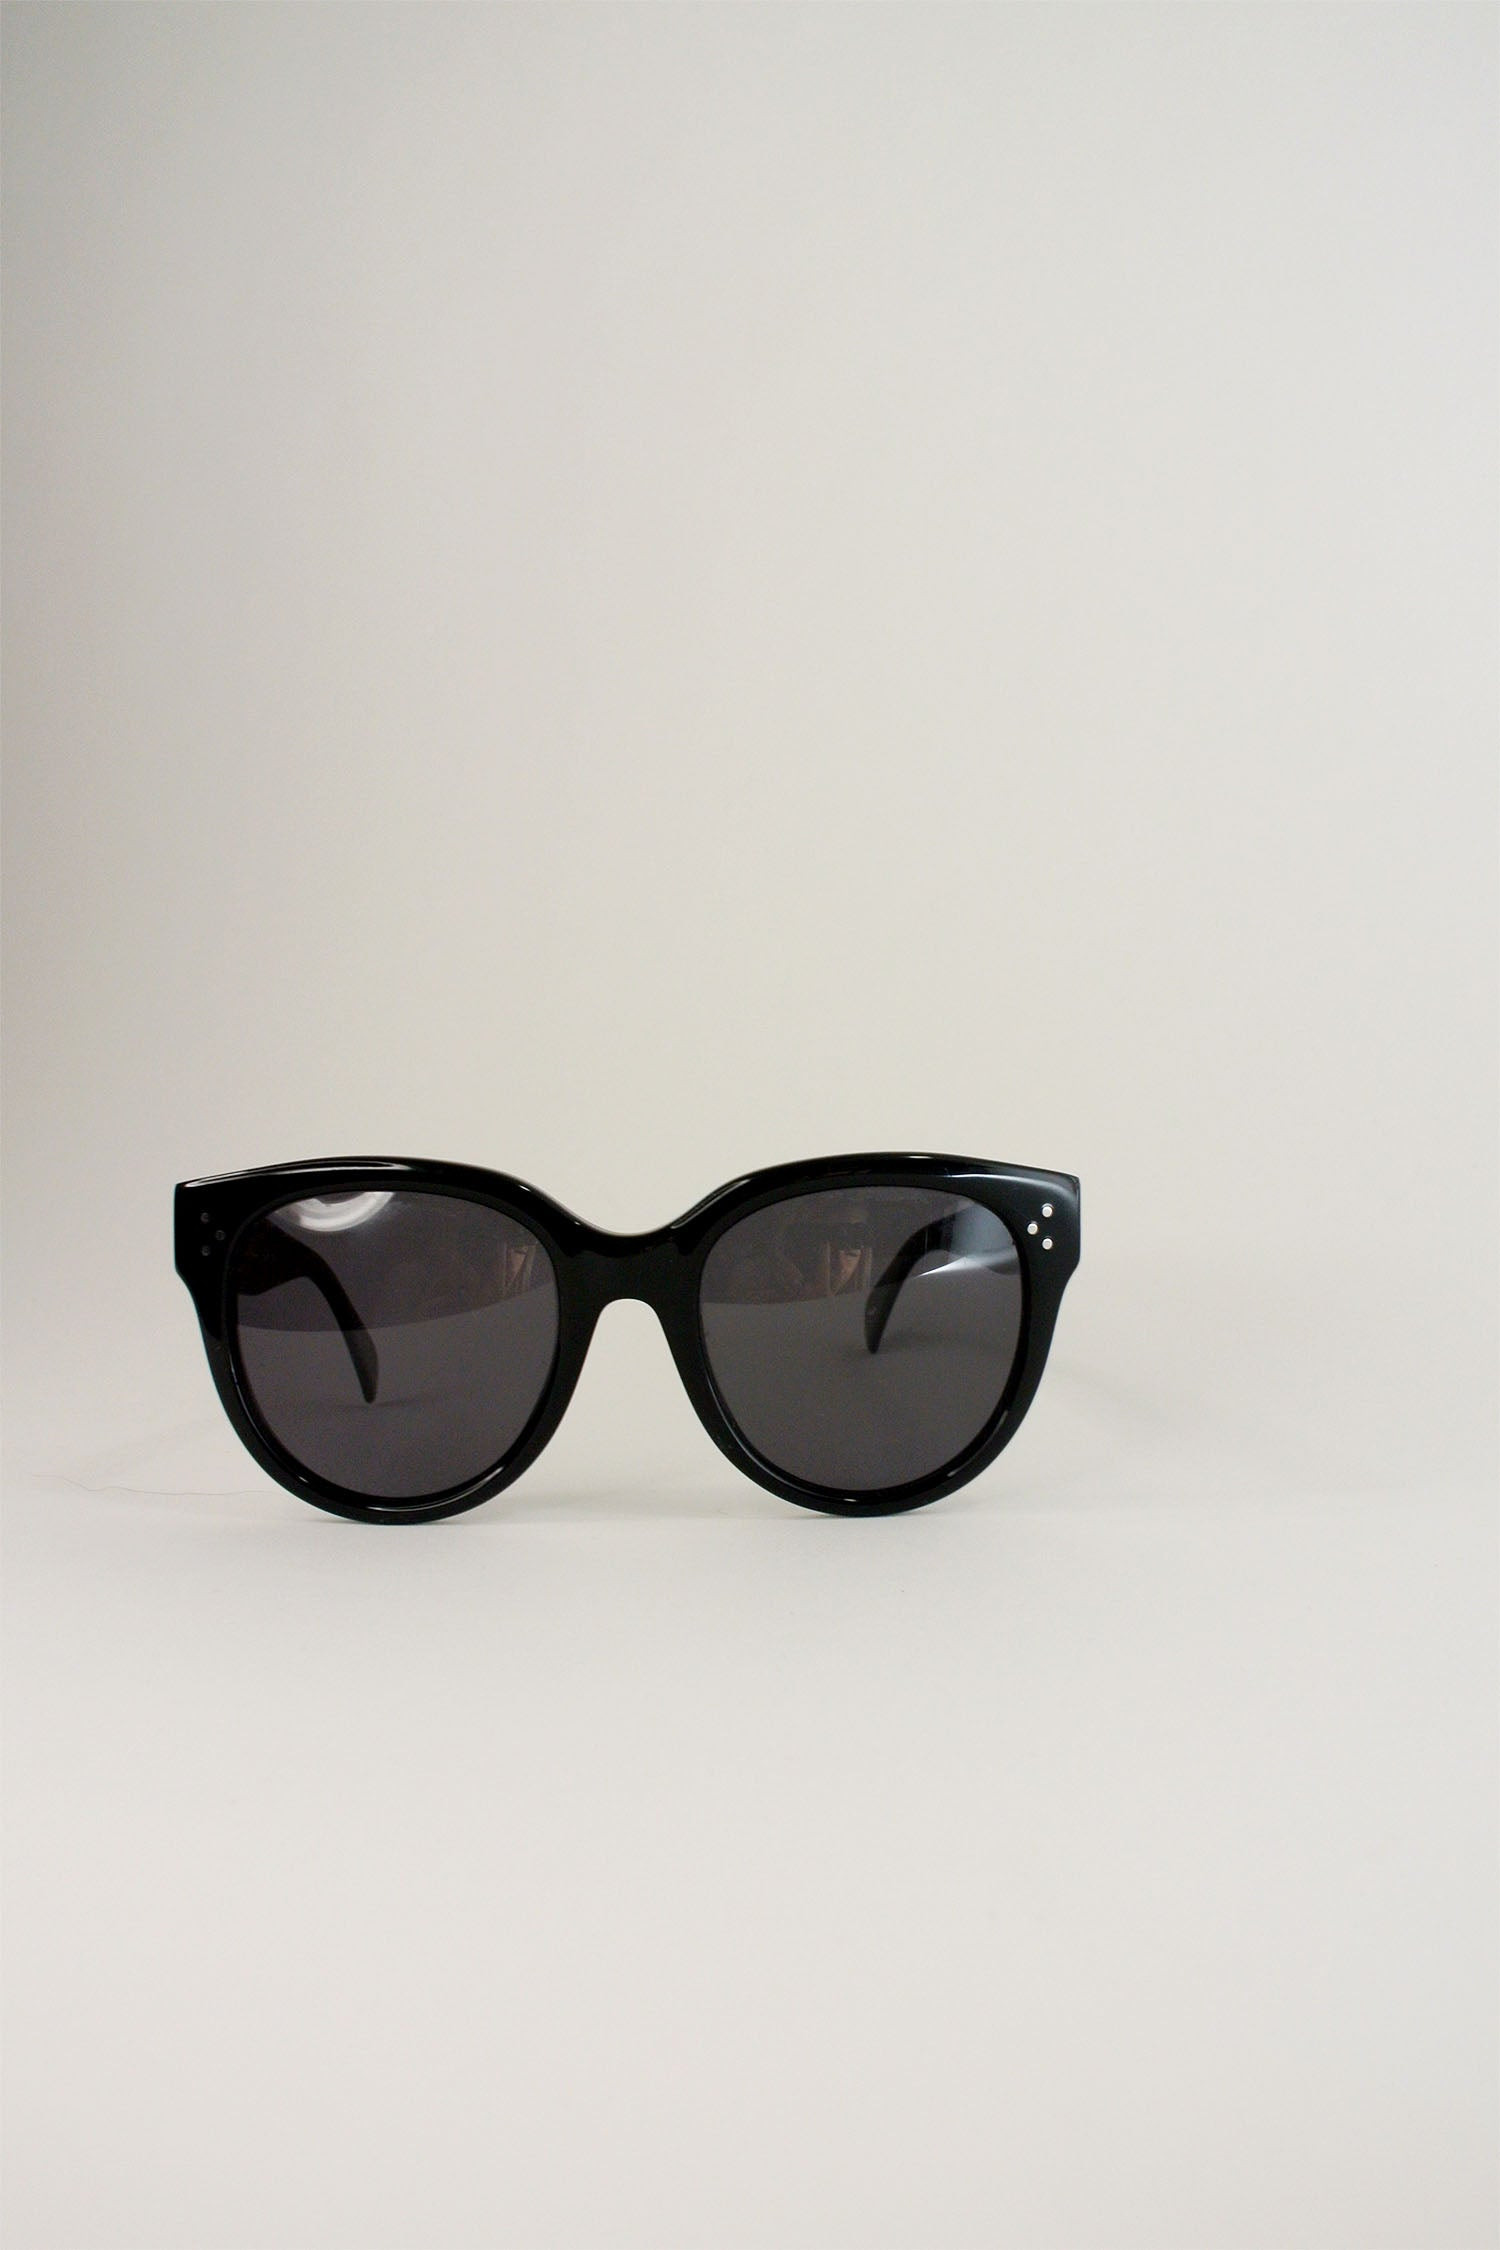 Celine AUDREY Polarized Sunglasses